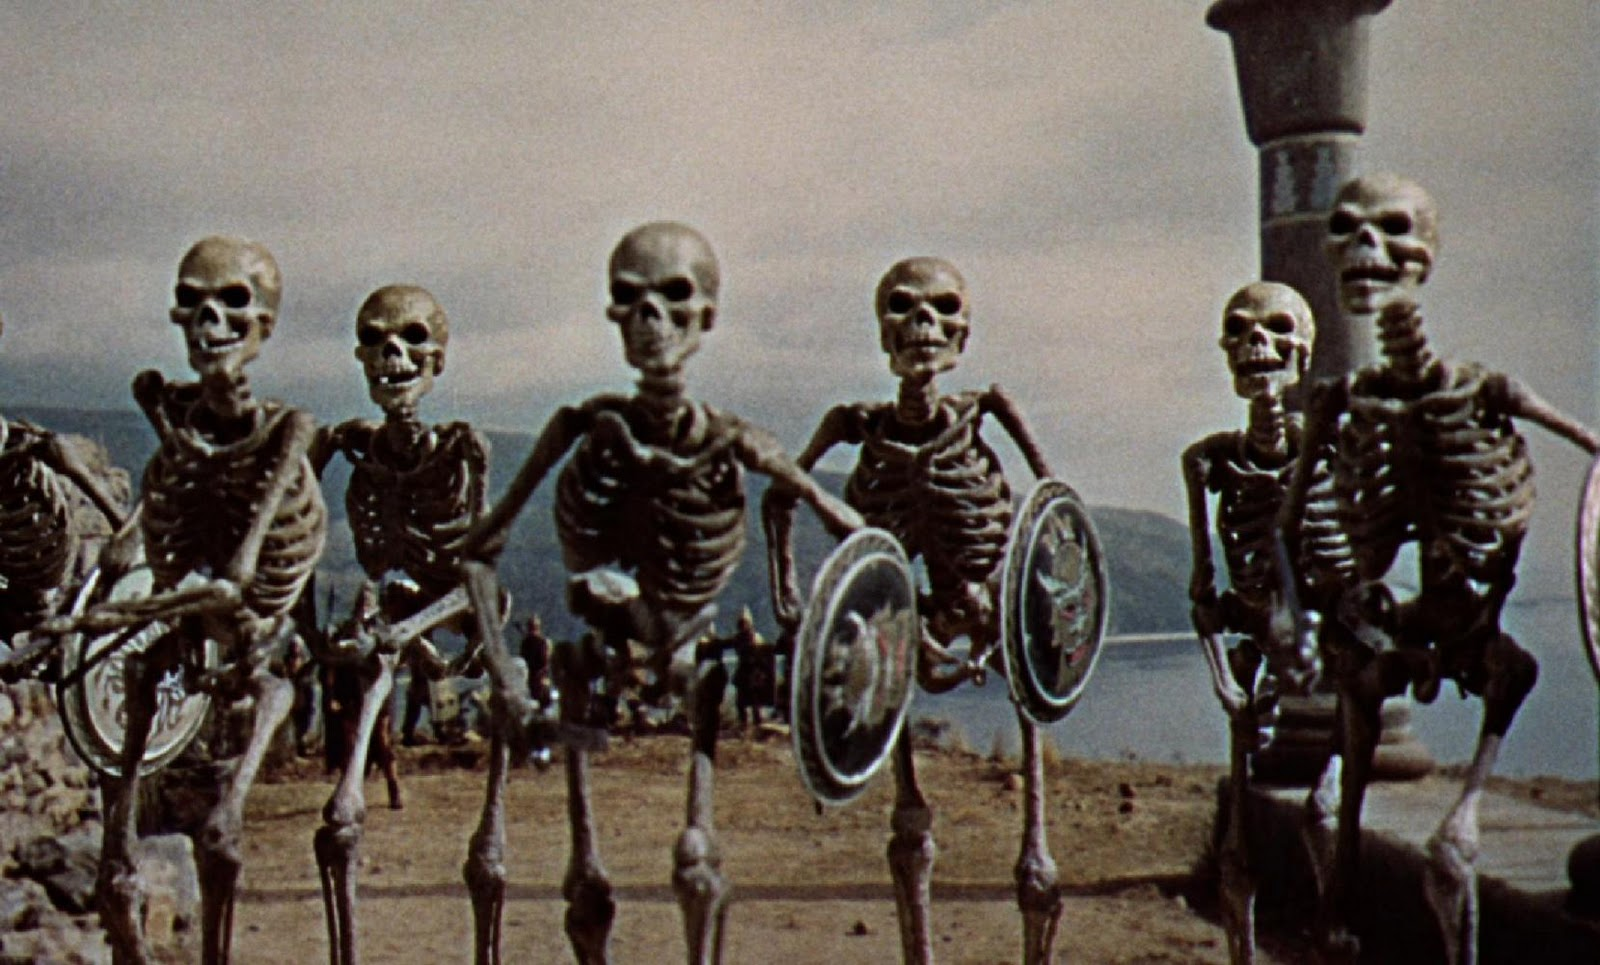 Ray Harryhausen archives will inspire